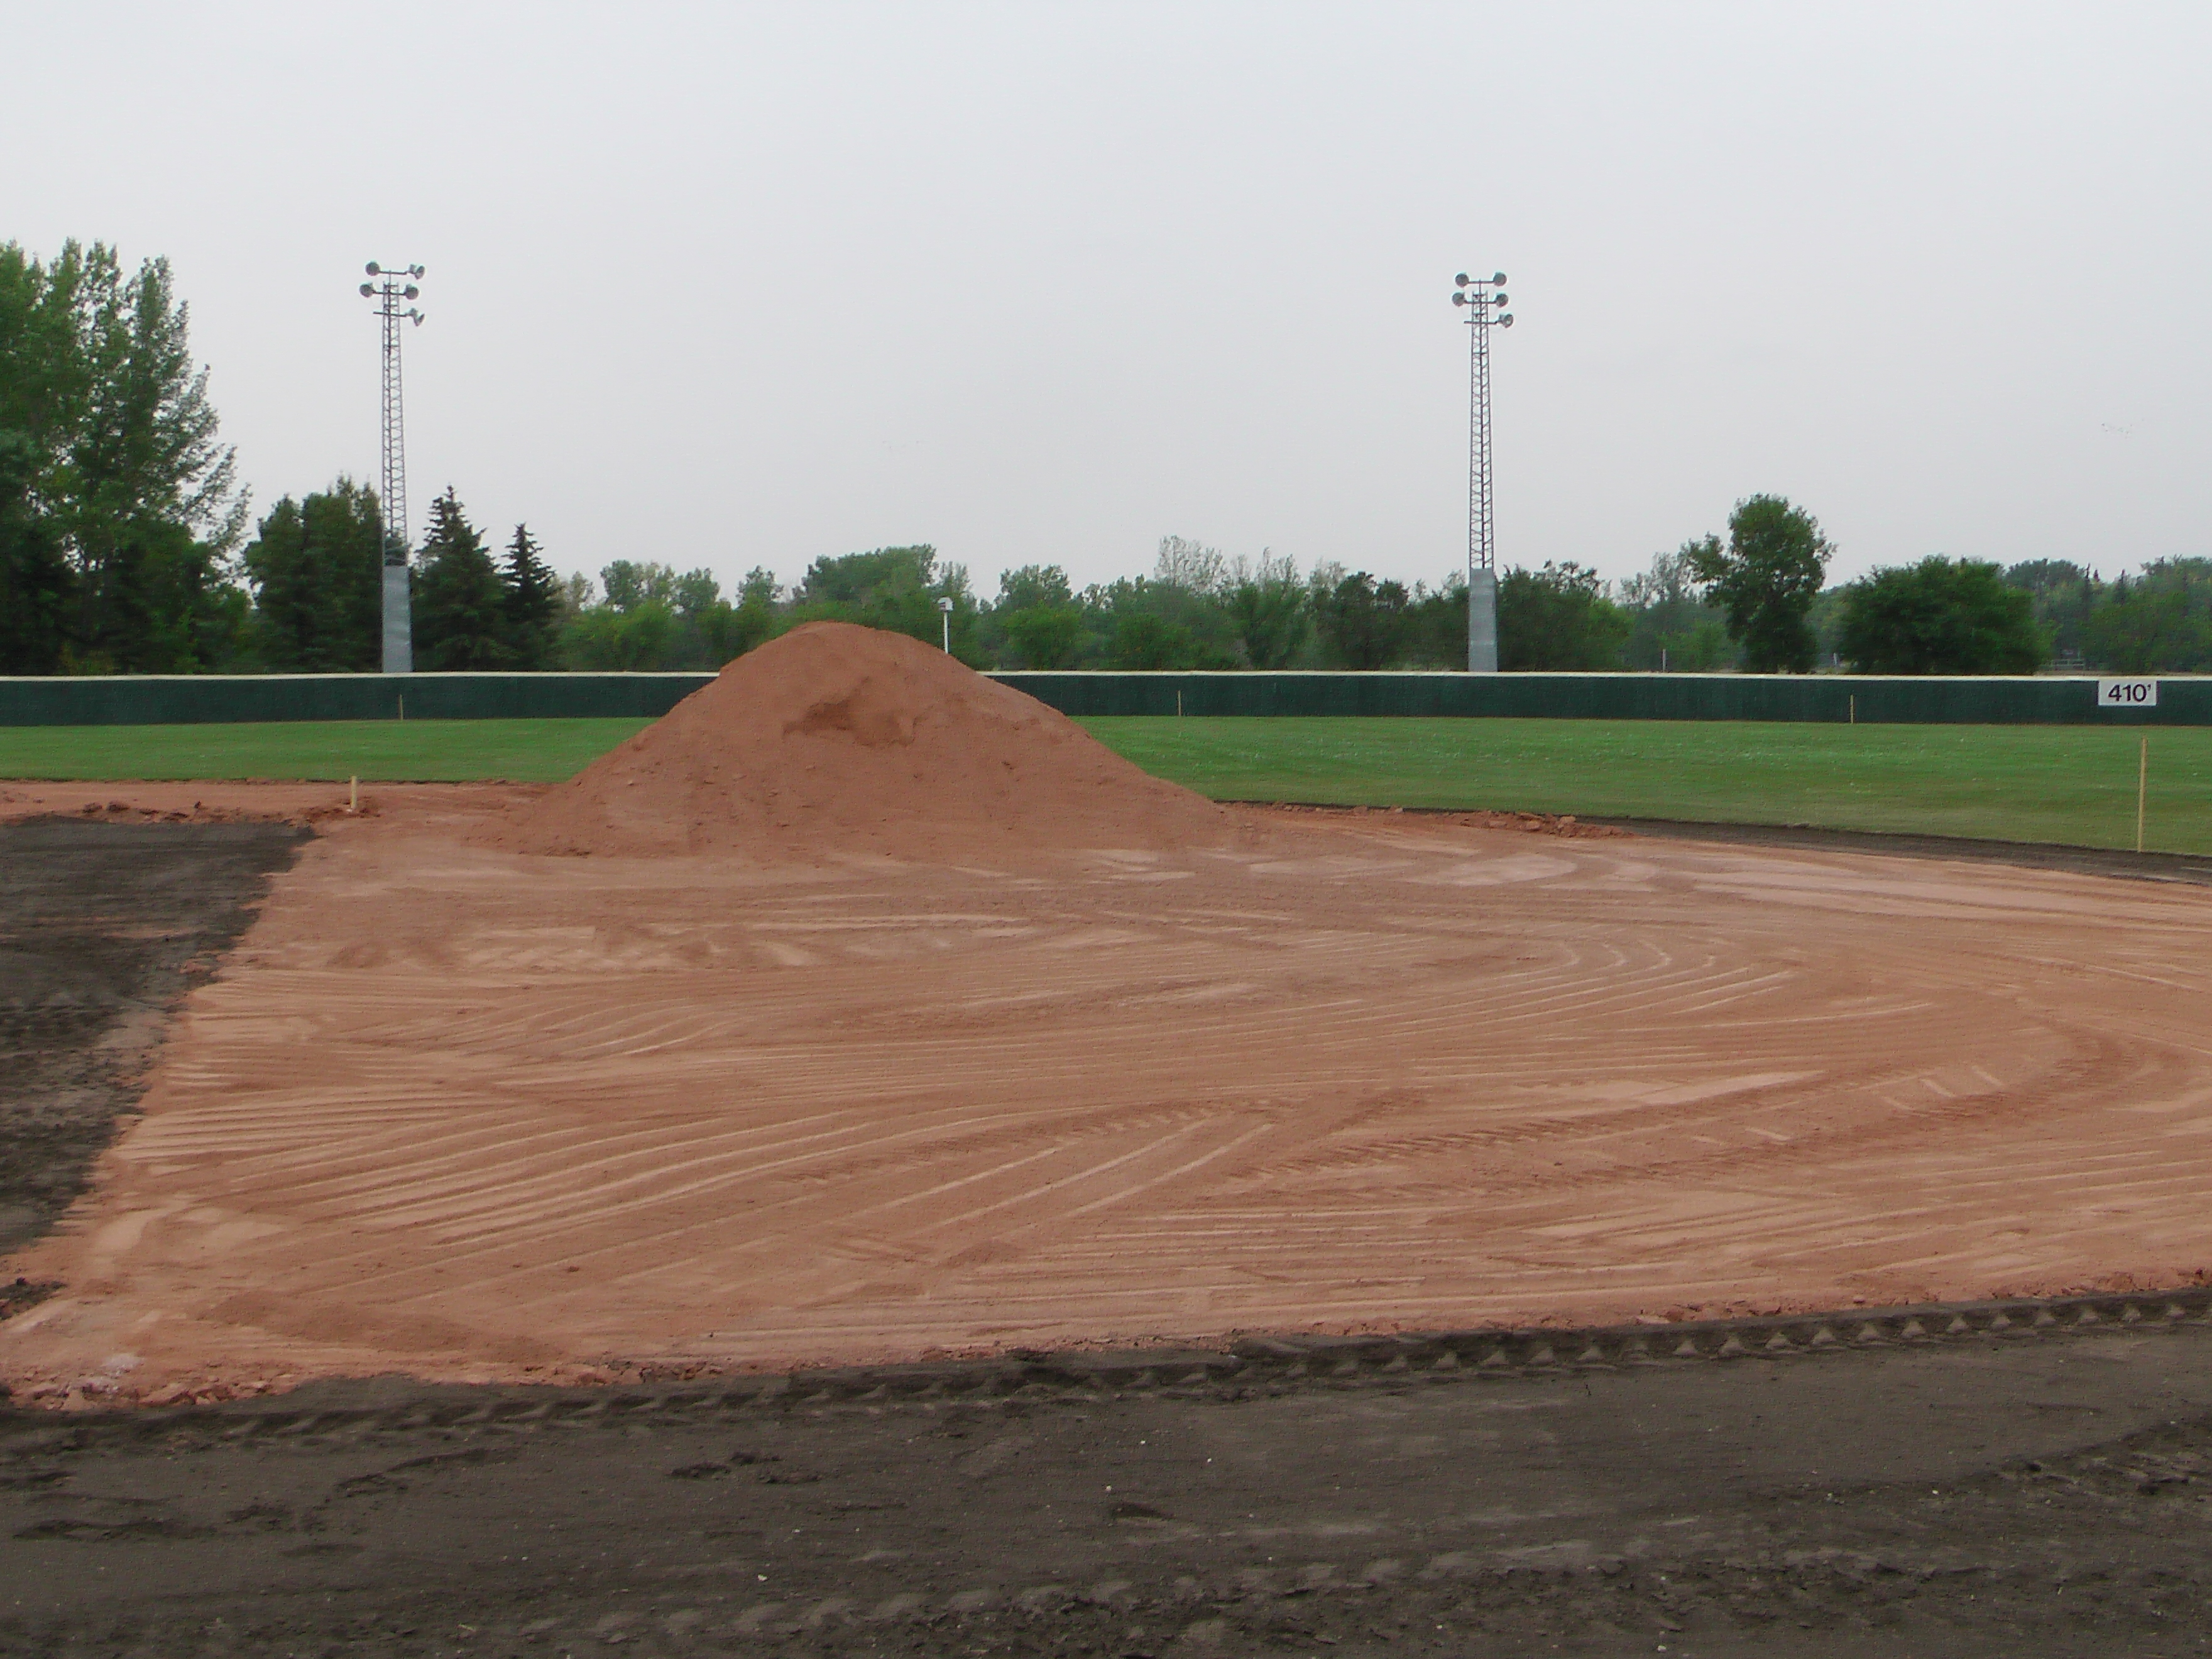 Aug 26/27 2018 Optimist Park Renovations, Continue Leveling Top Soil, More Top Soil added, Digging/Leveling Base Lines/Start Level Shale - Image 5